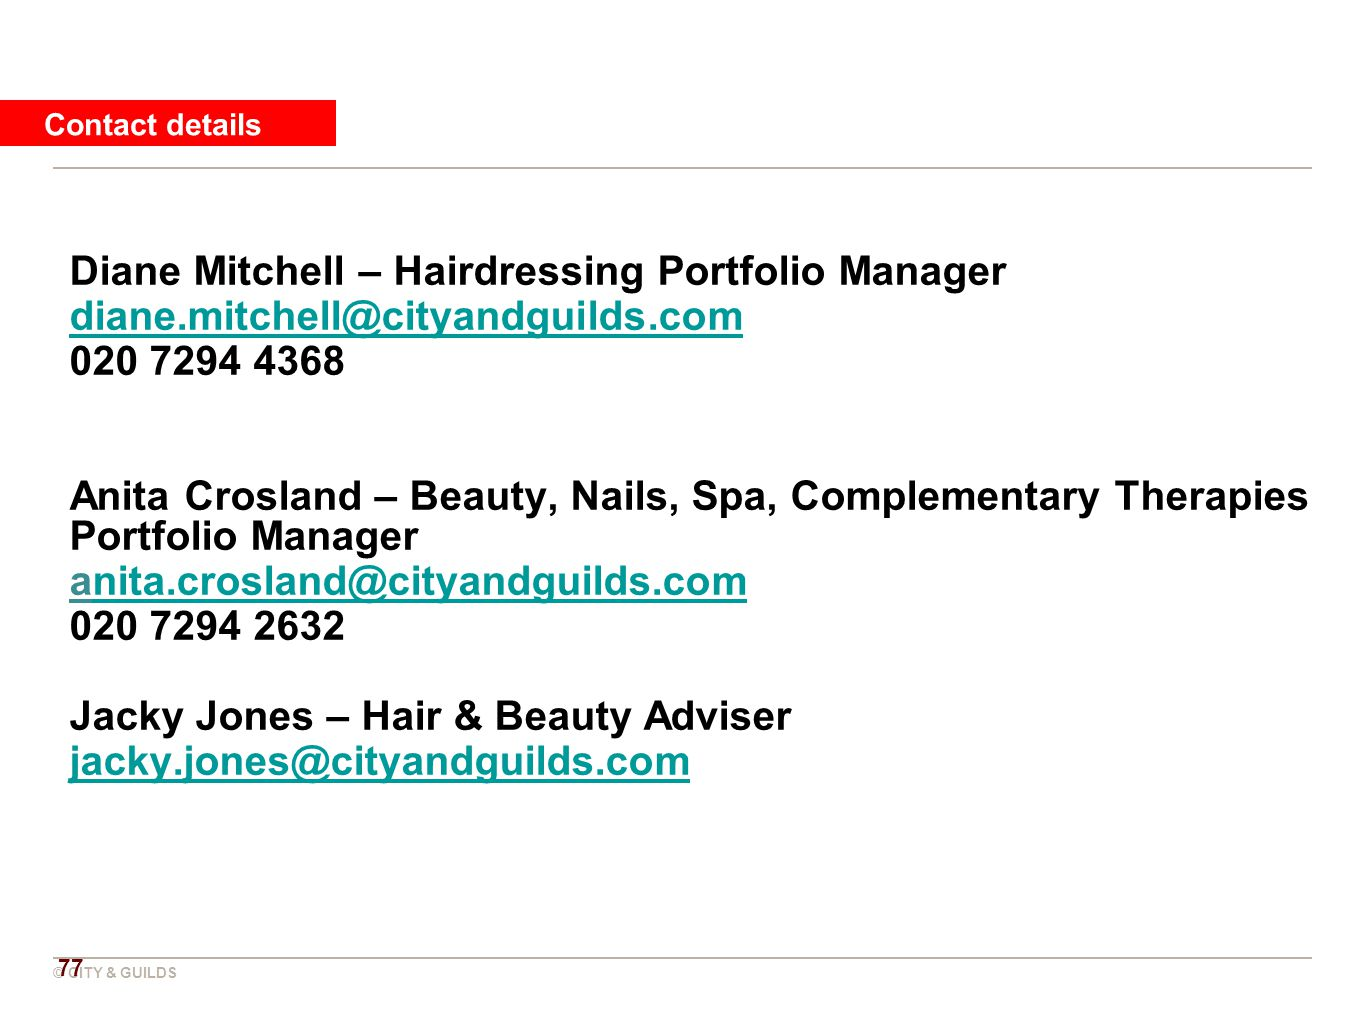 © CITY & GUILDS Diane Mitchell – Hairdressing Portfolio Manager diane.mitchell@cityandguilds.com 020 7294 4368 Anita Crosland – Beauty, Nails, Spa, Complementary Therapies Portfolio Manager anita.crosland@cityandguilds.comnita.crosland@cityandguilds.com 020 7294 2632 Jacky Jones – Hair & Beauty Adviser jacky.jones@cityandguilds.com Contact details 77